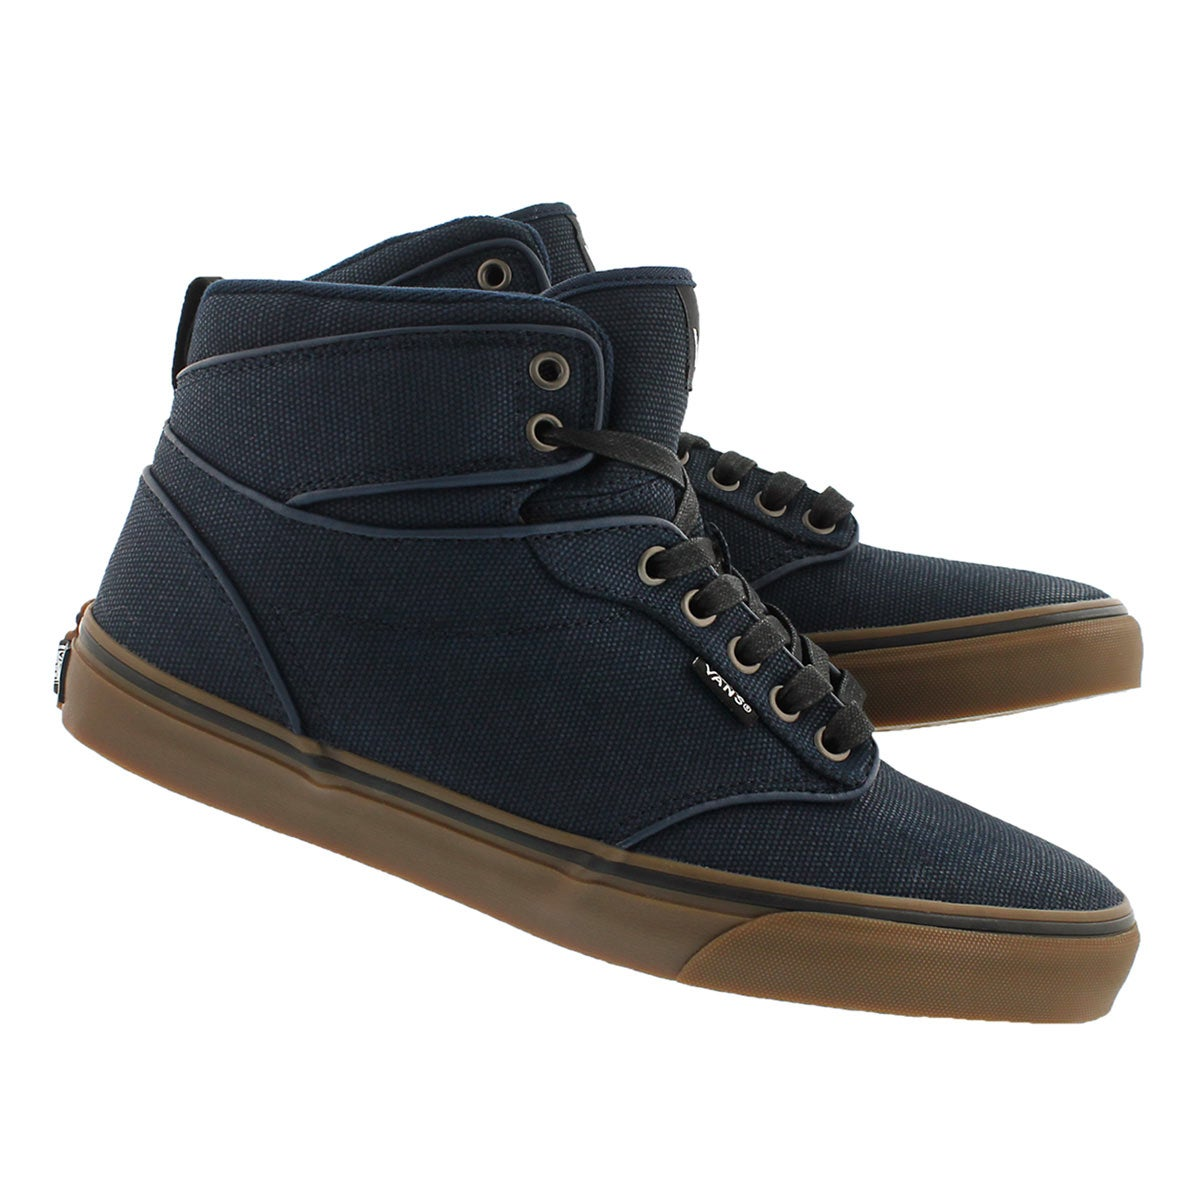 Mns Atwood Hi twill lace up sneaker